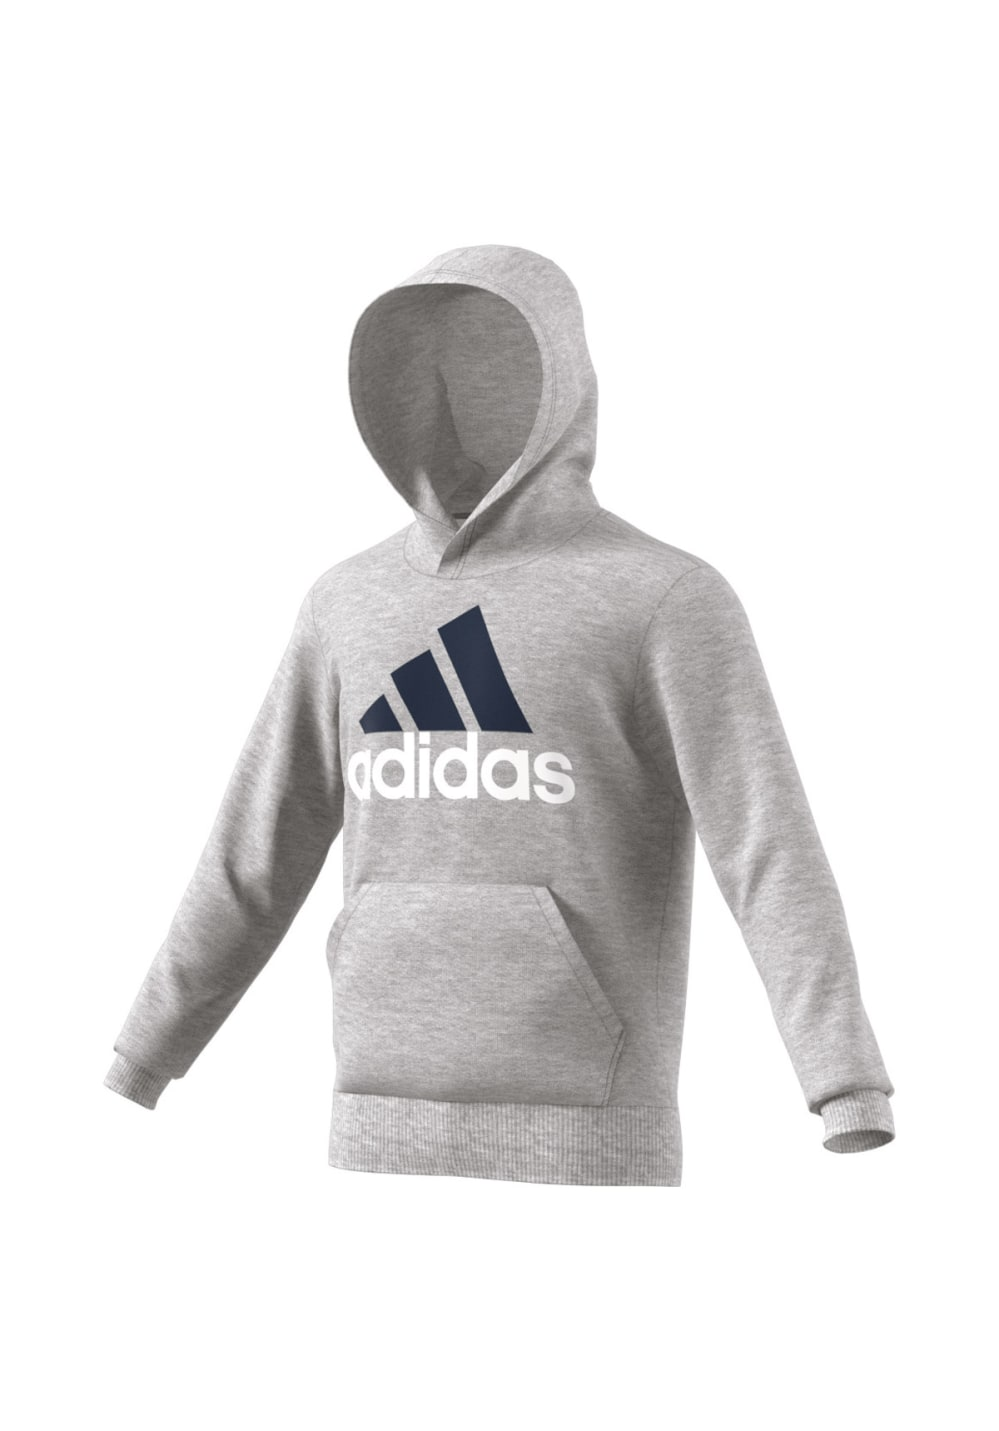 Essentials Terry Herren Adidas Grau Pullover Hood French Für